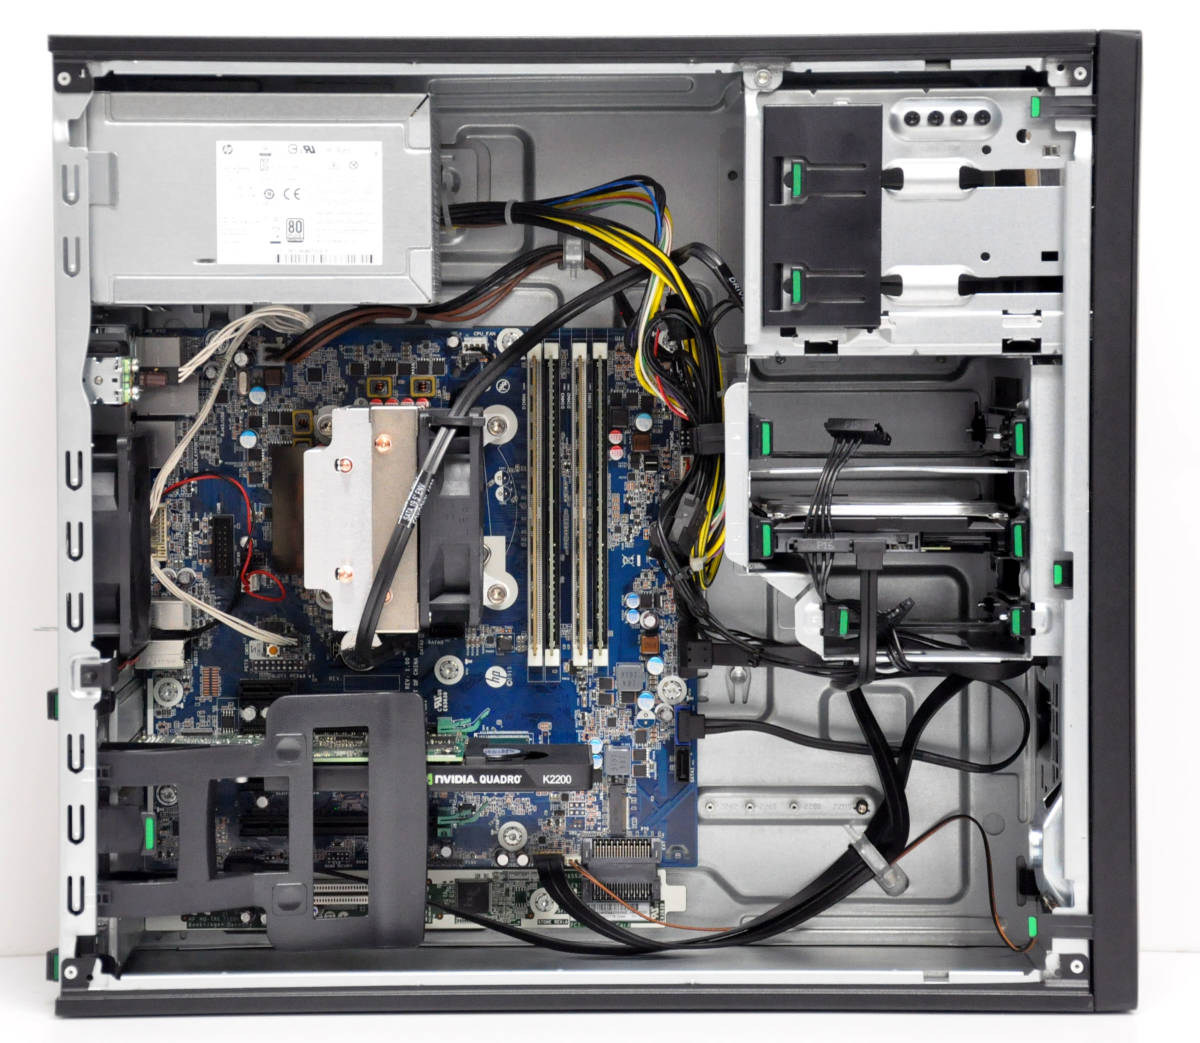 beautiful goods Xeon-v5 installing HP Z240 Xeon E3-1280v5 3.7GHz / memory 16GB / new goods SSD240+1TB / Quadro K2000 / multi / Win10